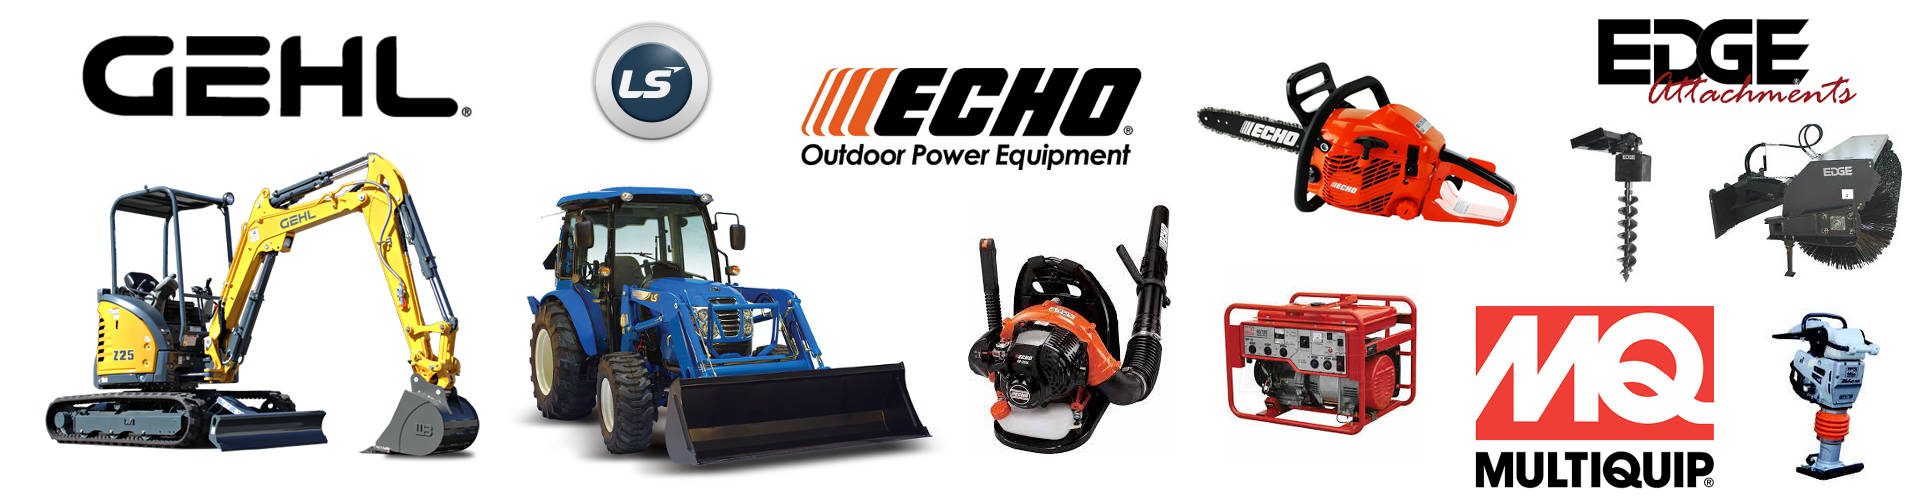 Equipment Sales in Ashland KY